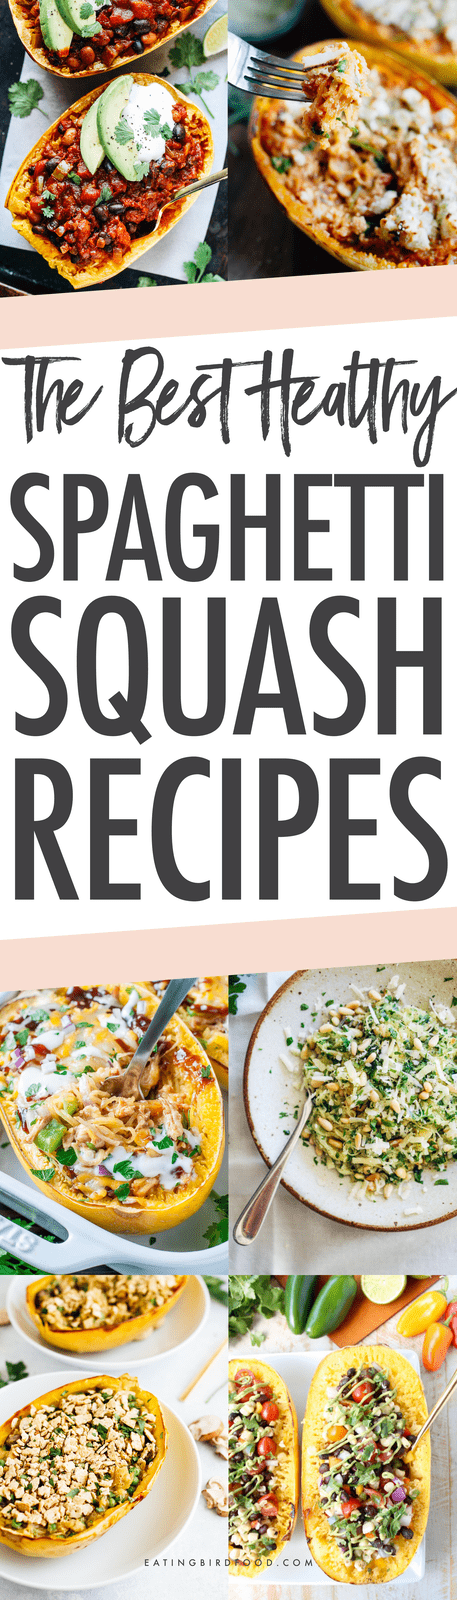 Get creative this winter with 22 healthy spaghetti squash recipes. Spaghetti squash is a delicious, low-carb seasonal vegetable that can be used a variety of ways -- even for breakfast or dessert!